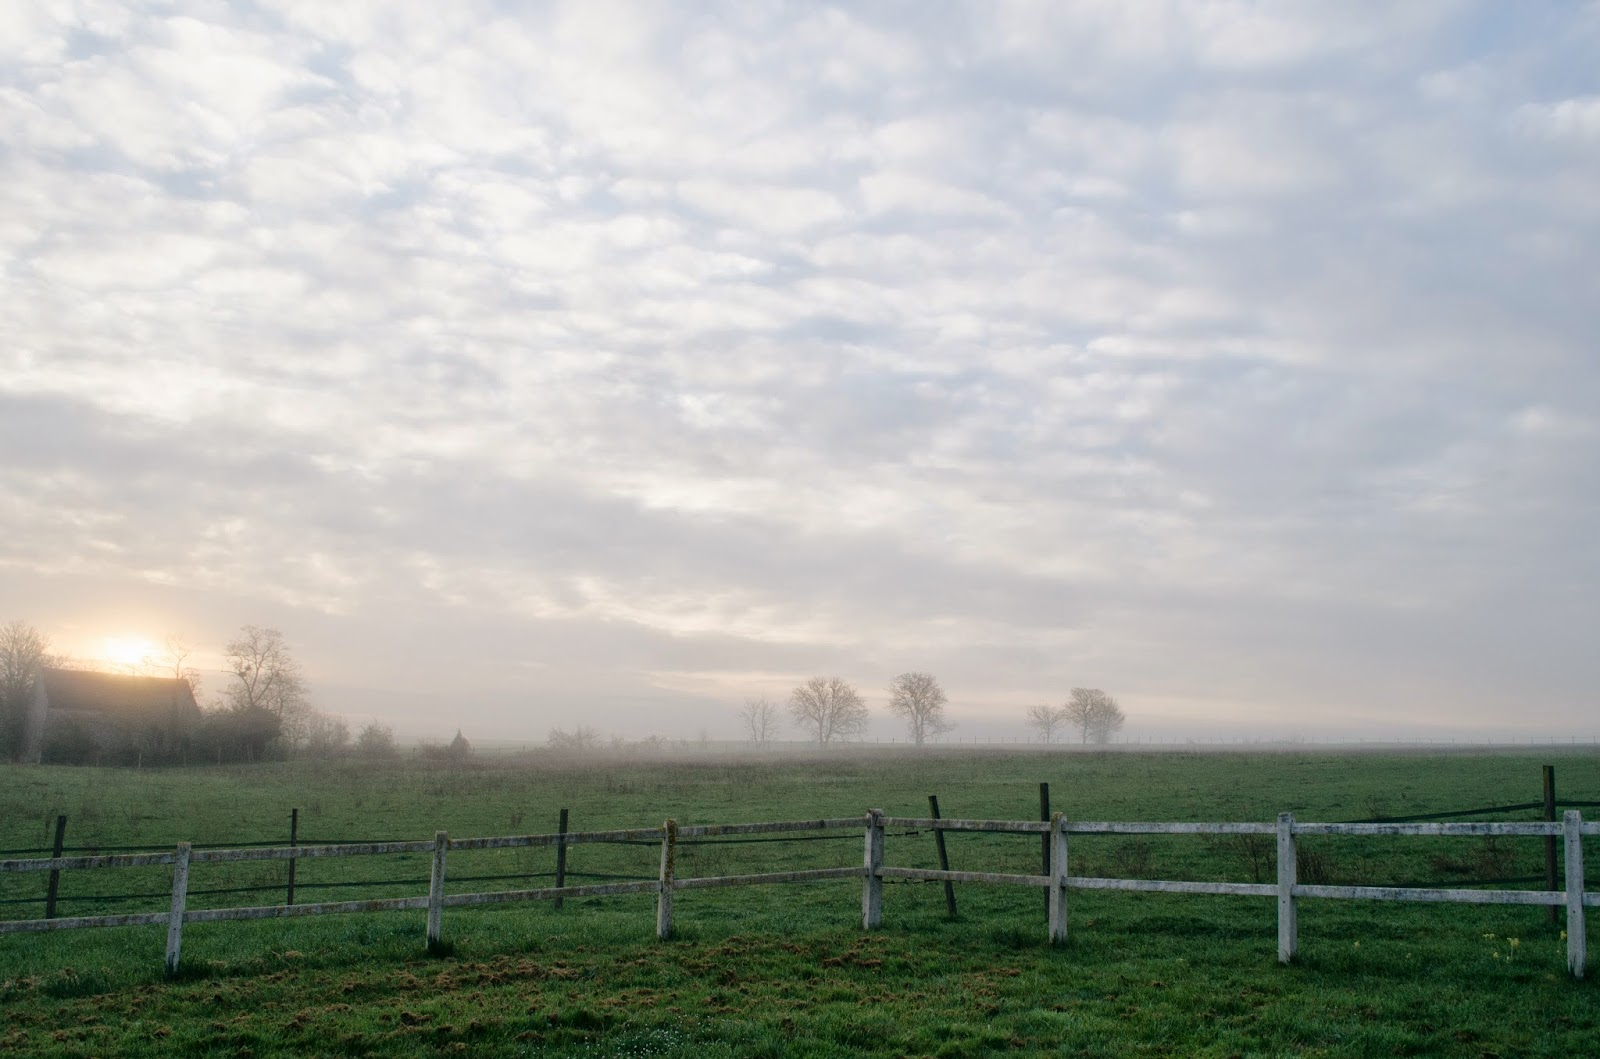 aesthetic fauna // foggy pasture, northern france